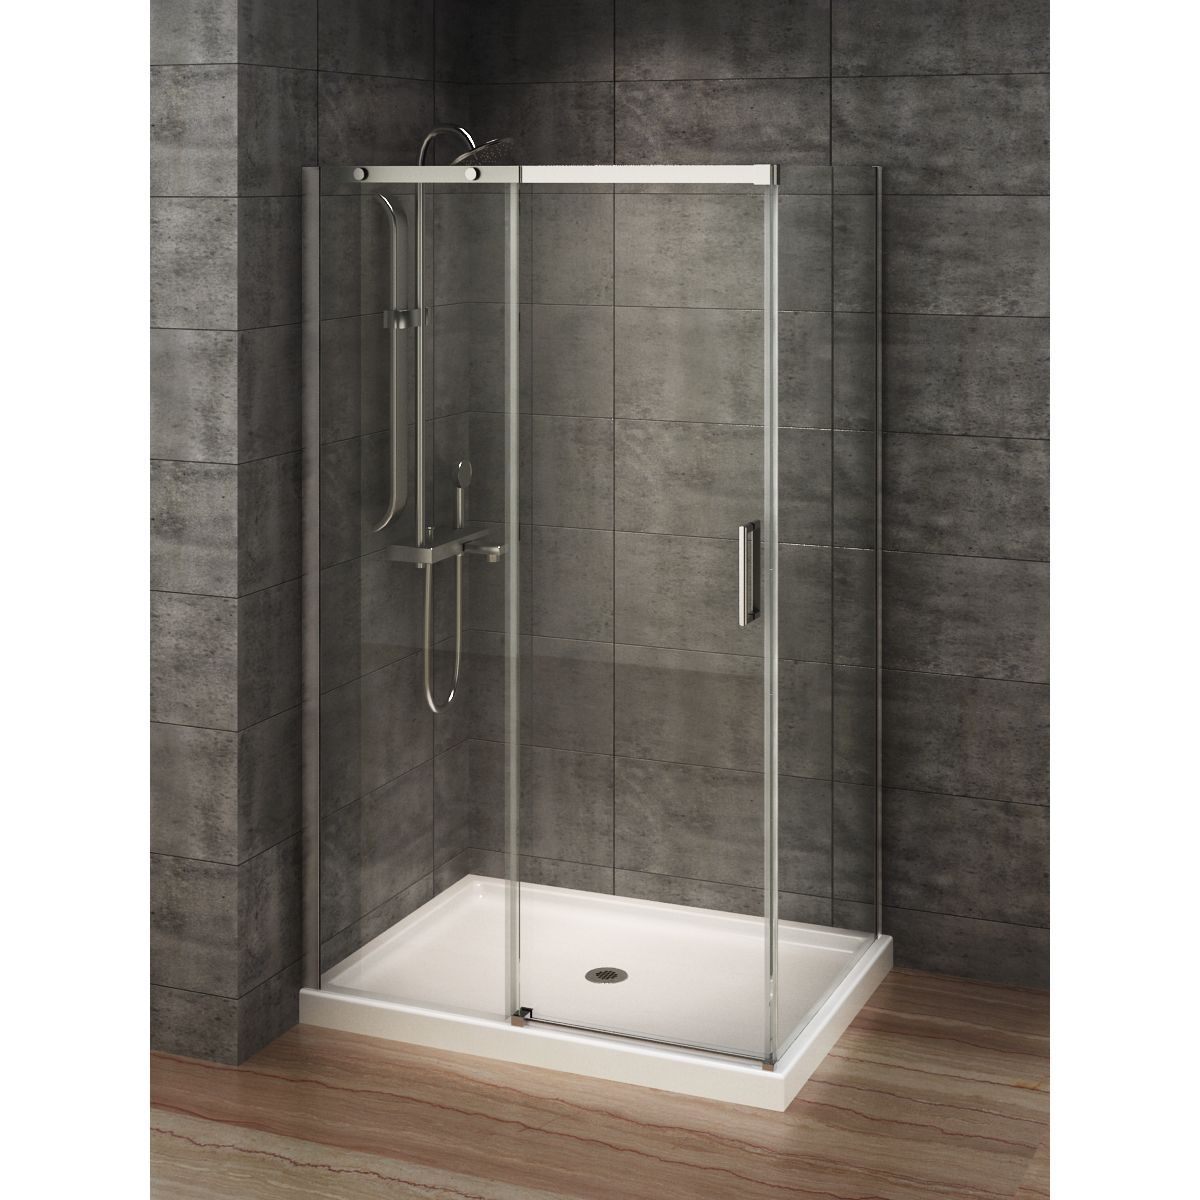 Berlin Glass 48 Inch X 32 Inch Rectangular Corner Shower Stall